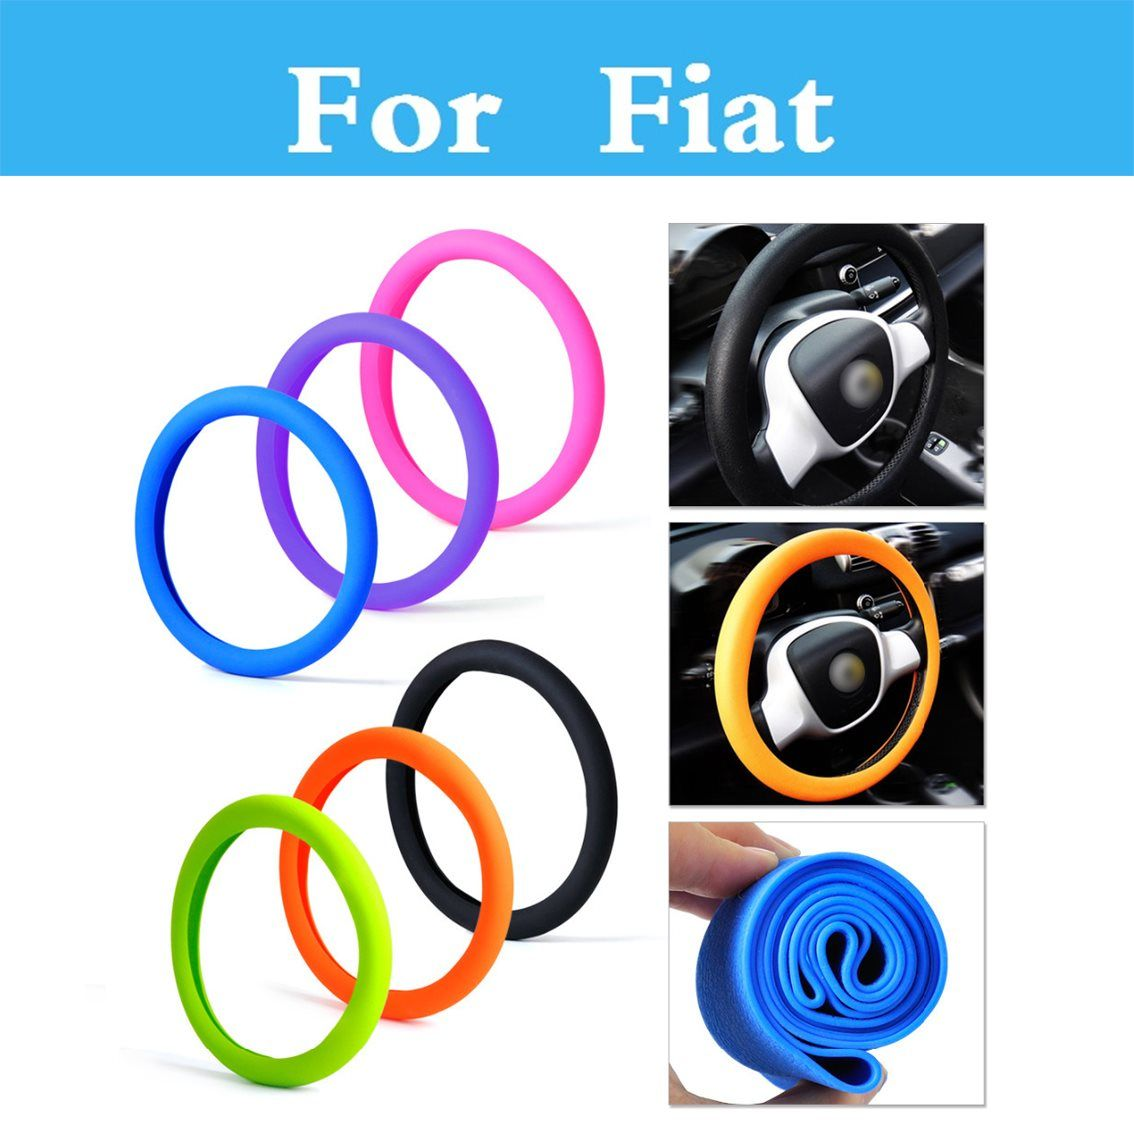 HOT Soft Silicone Steering Wheel Cover Shell Skidproof Eco Friendly For Fiat Seicento Siena Stilo Palio Panda Sedici